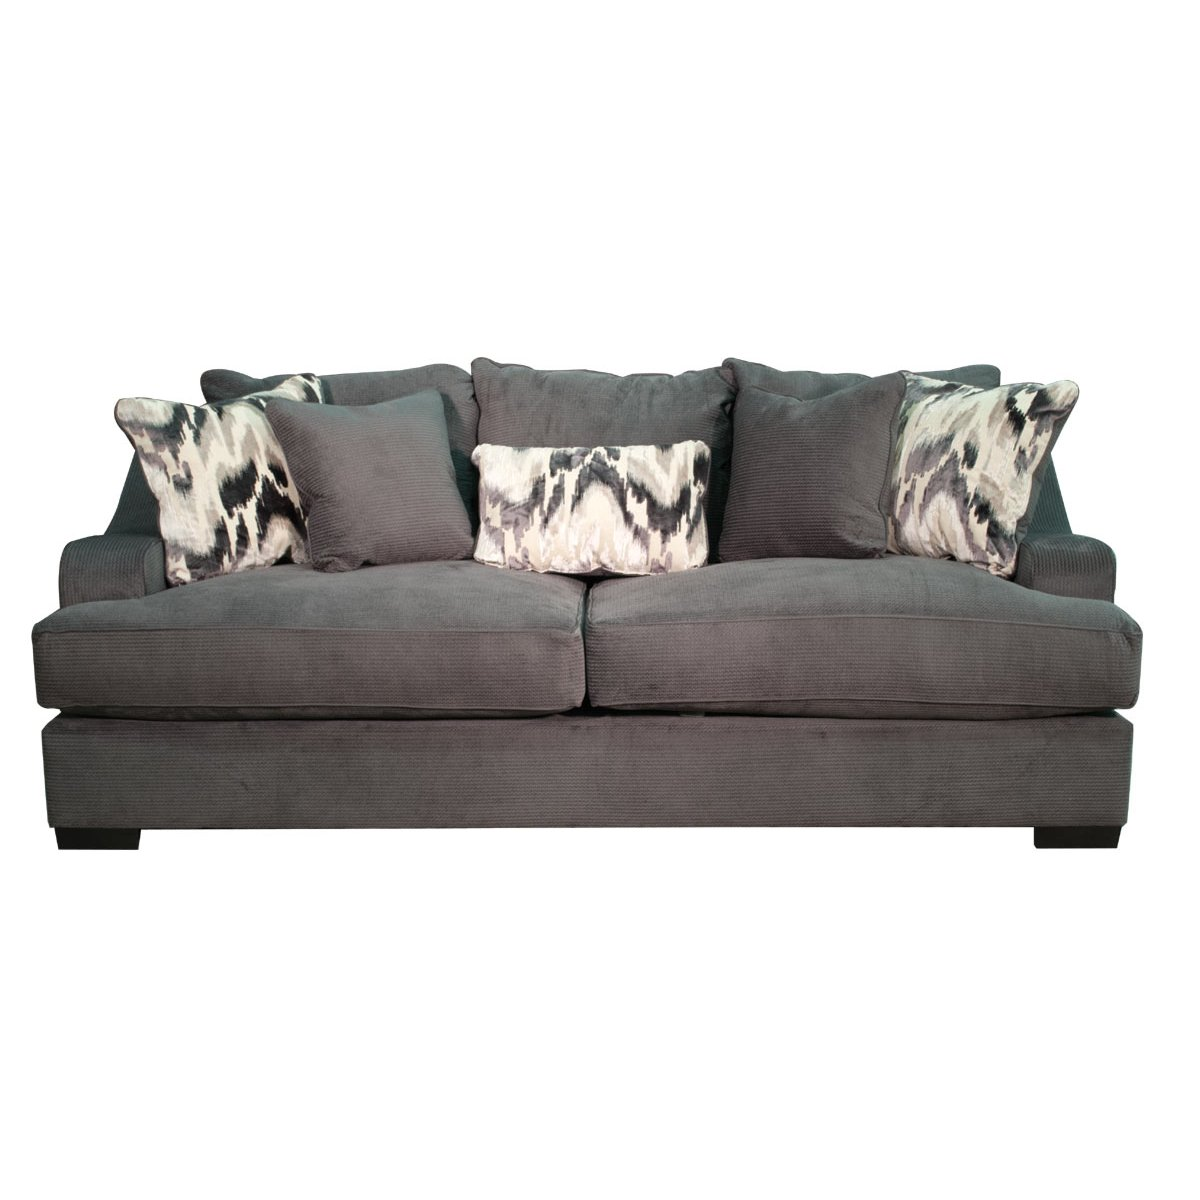 Spartan charcoal upholstered casual modern sofa for Casual couch